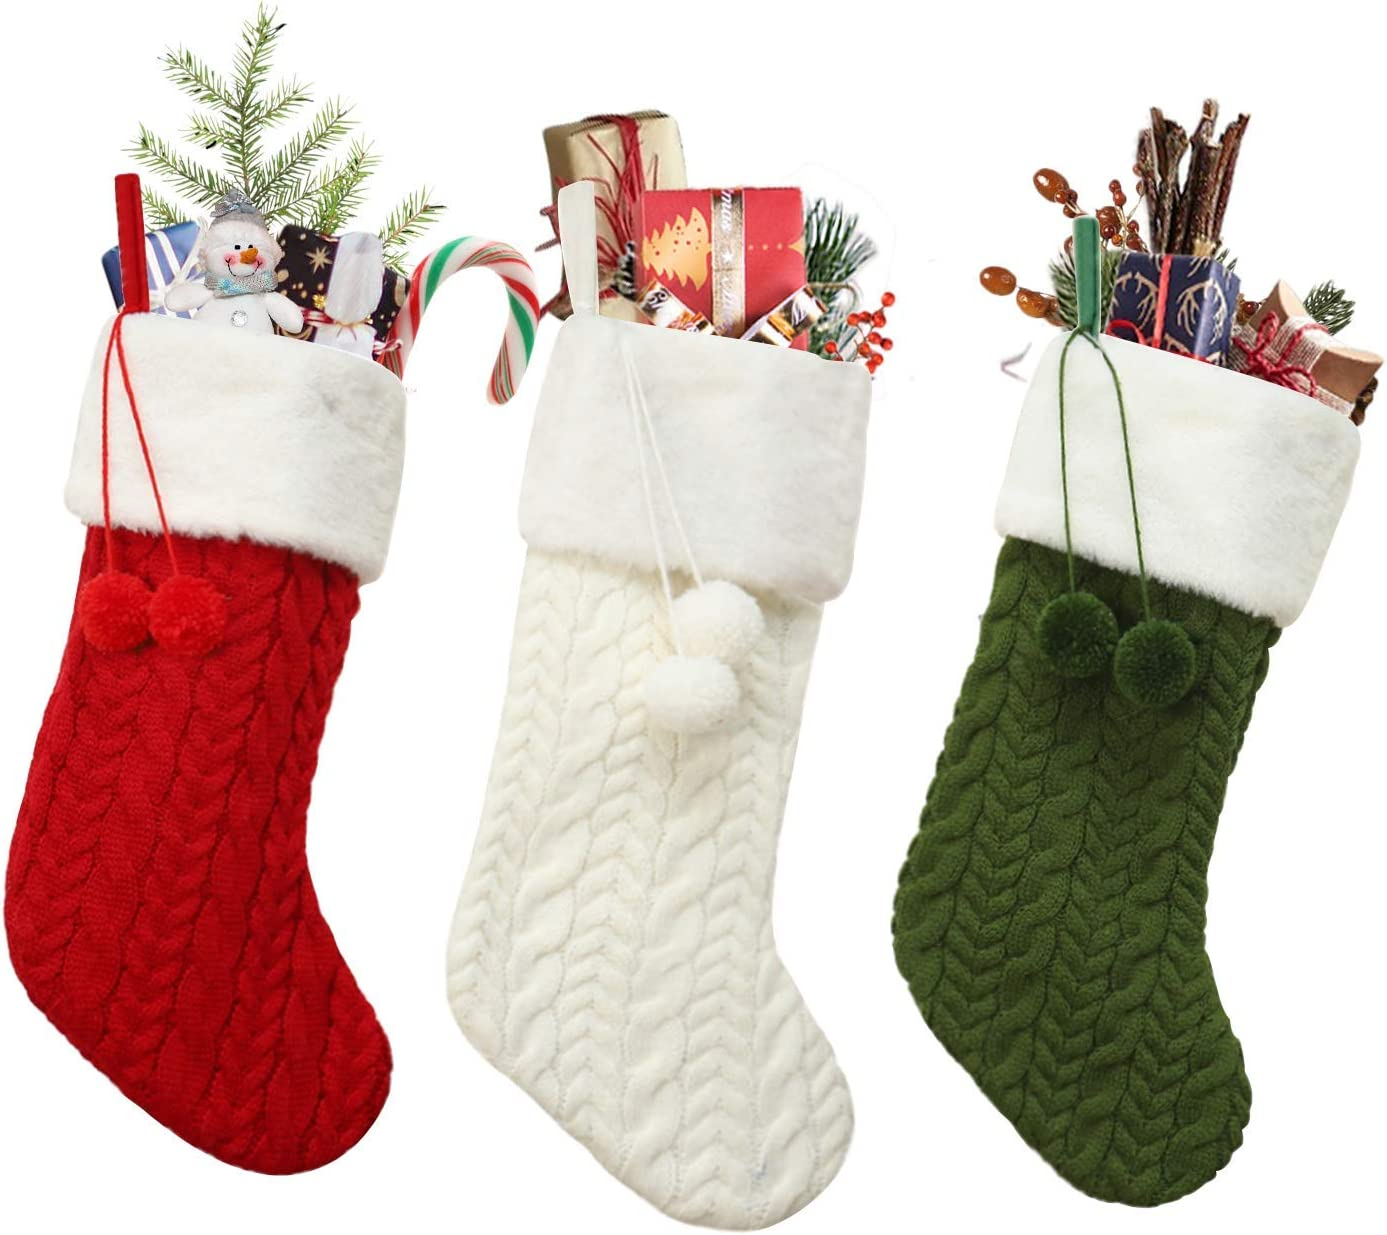 KNIT XMAS DECORATIONS PATTERN for Christmas Stocking!